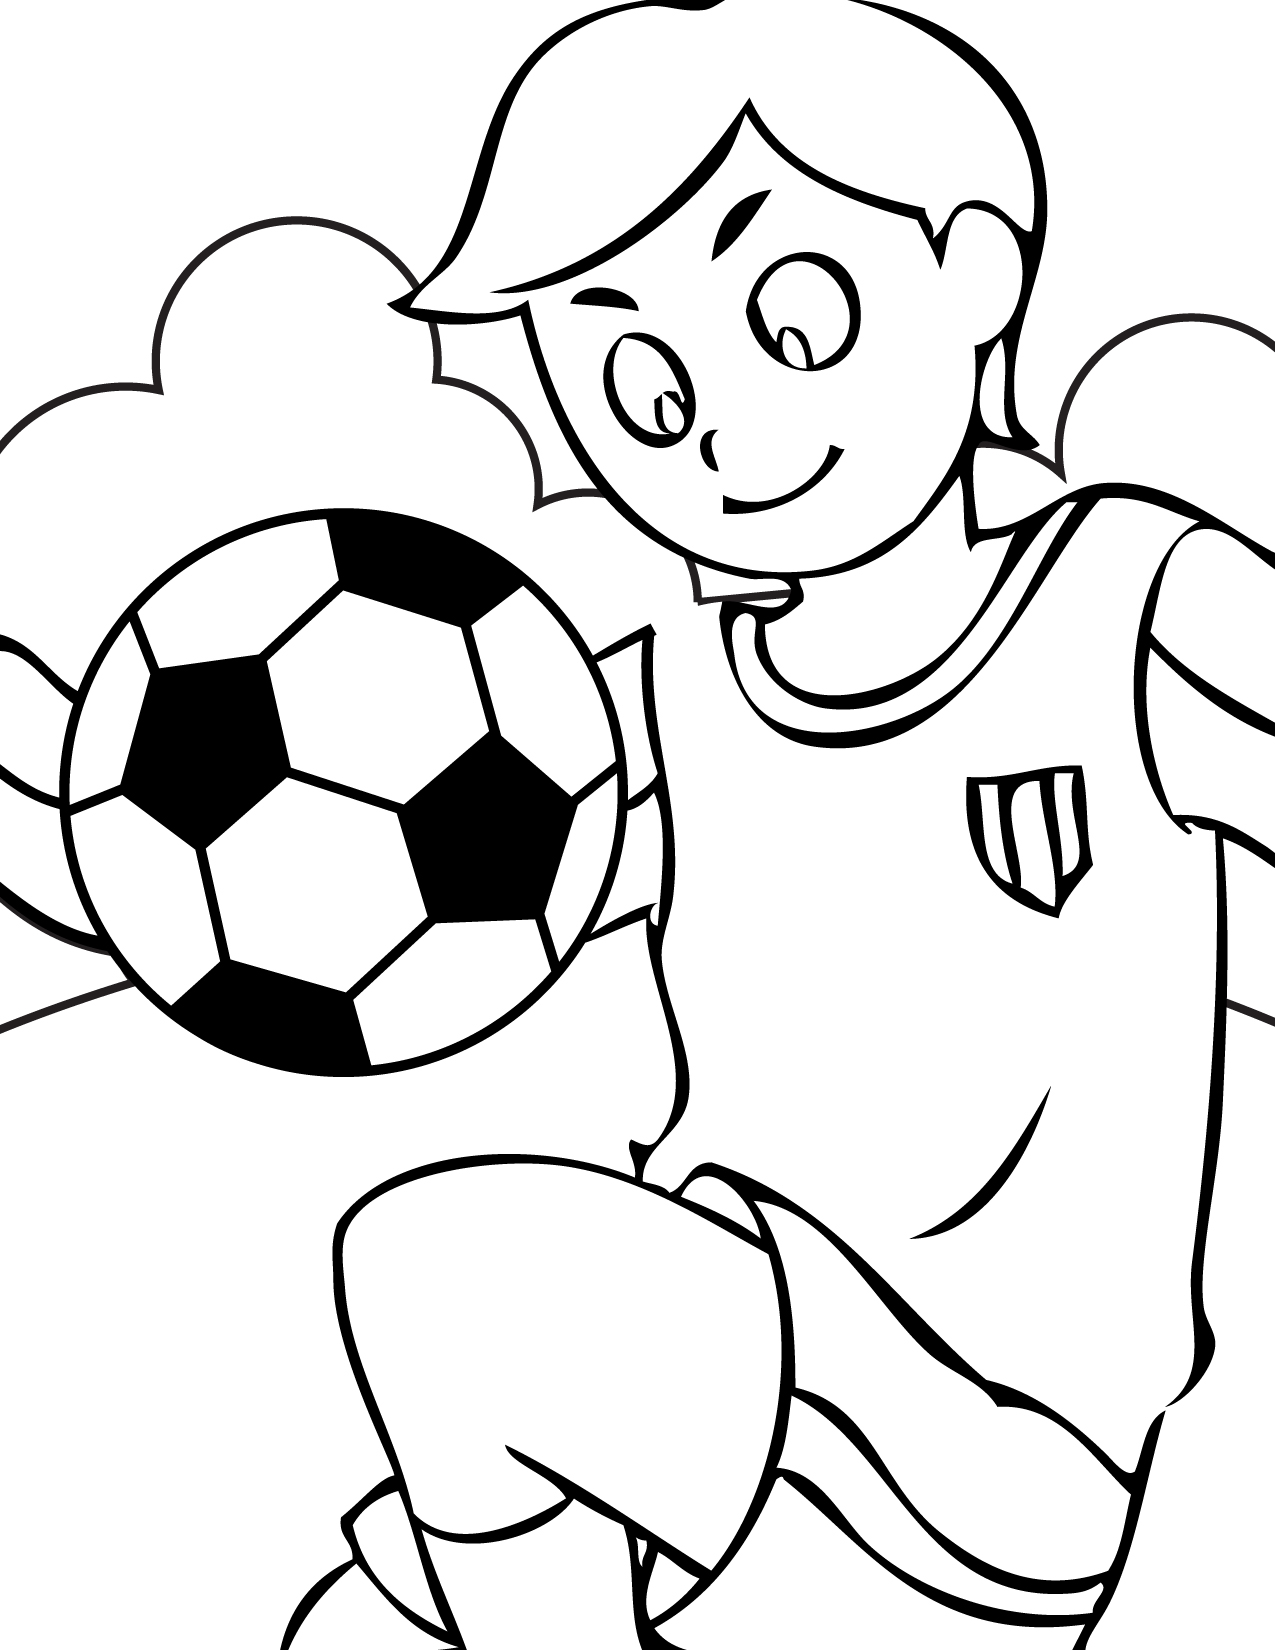 free printable sports coloring pages free printable sports coloring pages for kids coloring sports free printable pages